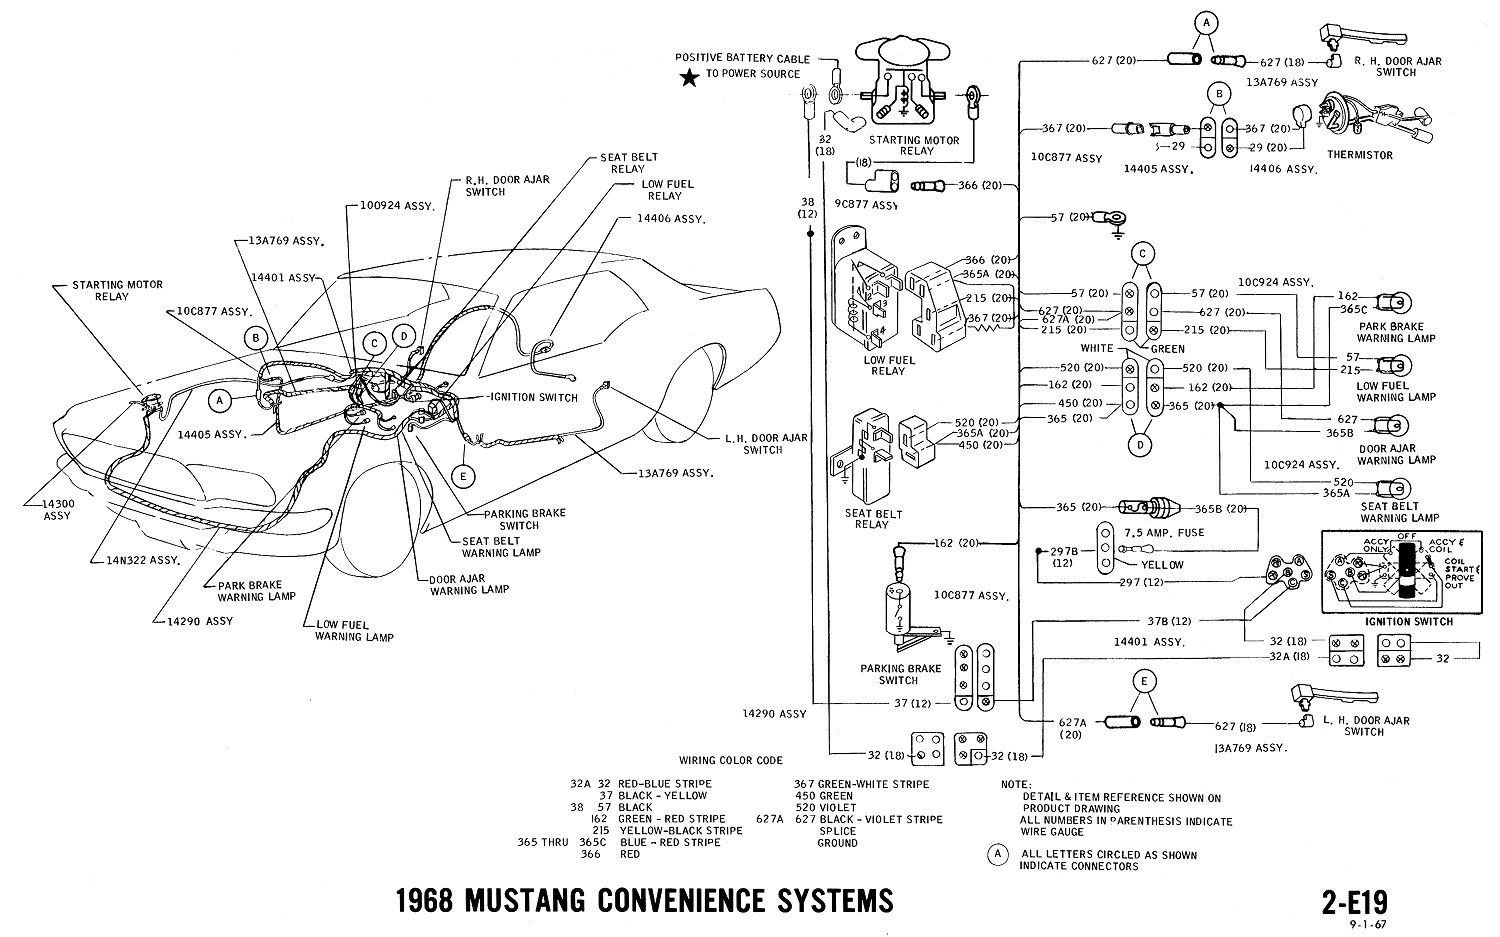 1968 mustang wiring diagram convenience systems 1968 mustang wiring diagram manual 68 mustang ignition wiring 1967 mustang ignition wiring diagram at gsmx.co